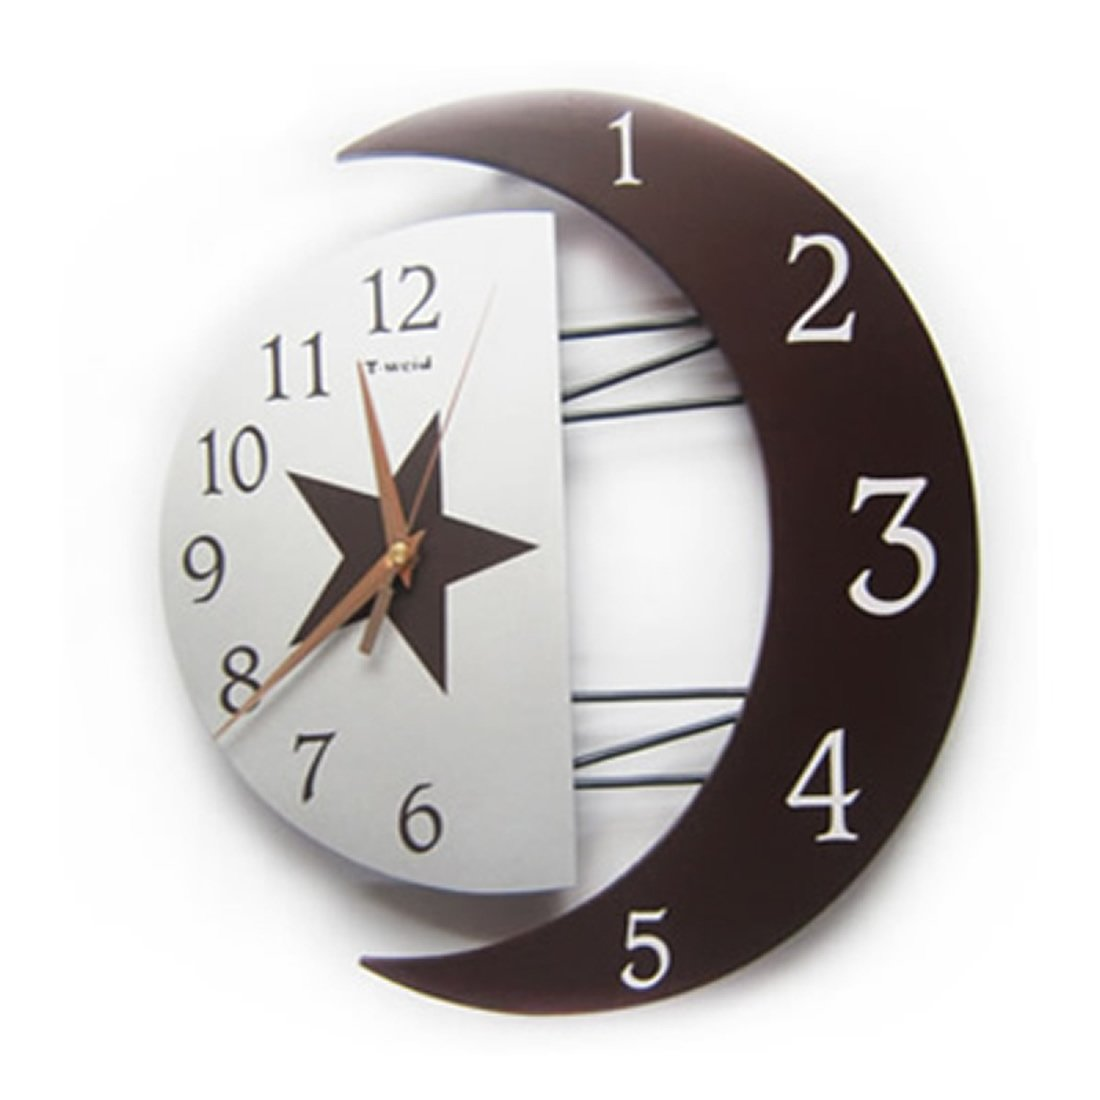 Wall Clock Designs For Home : Squidoo page not found